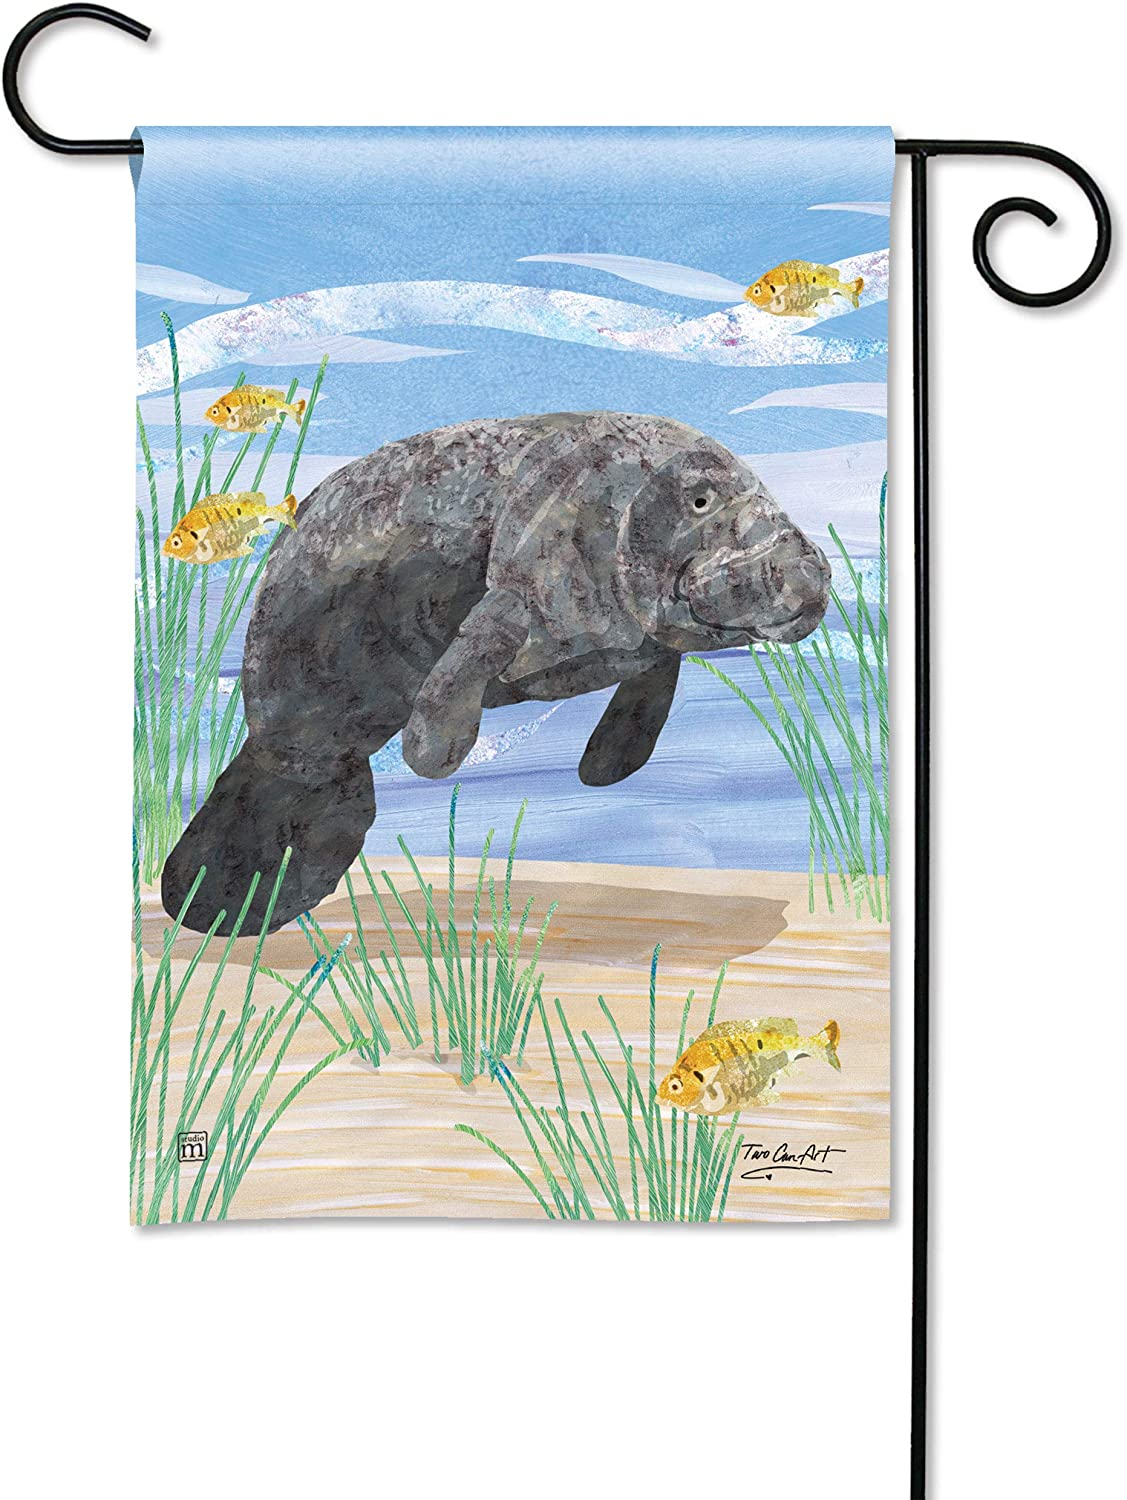 BreezeArt Studio M Manatee Decorative Garden Flag – Premium Quality, 12.5 x 18 Inches